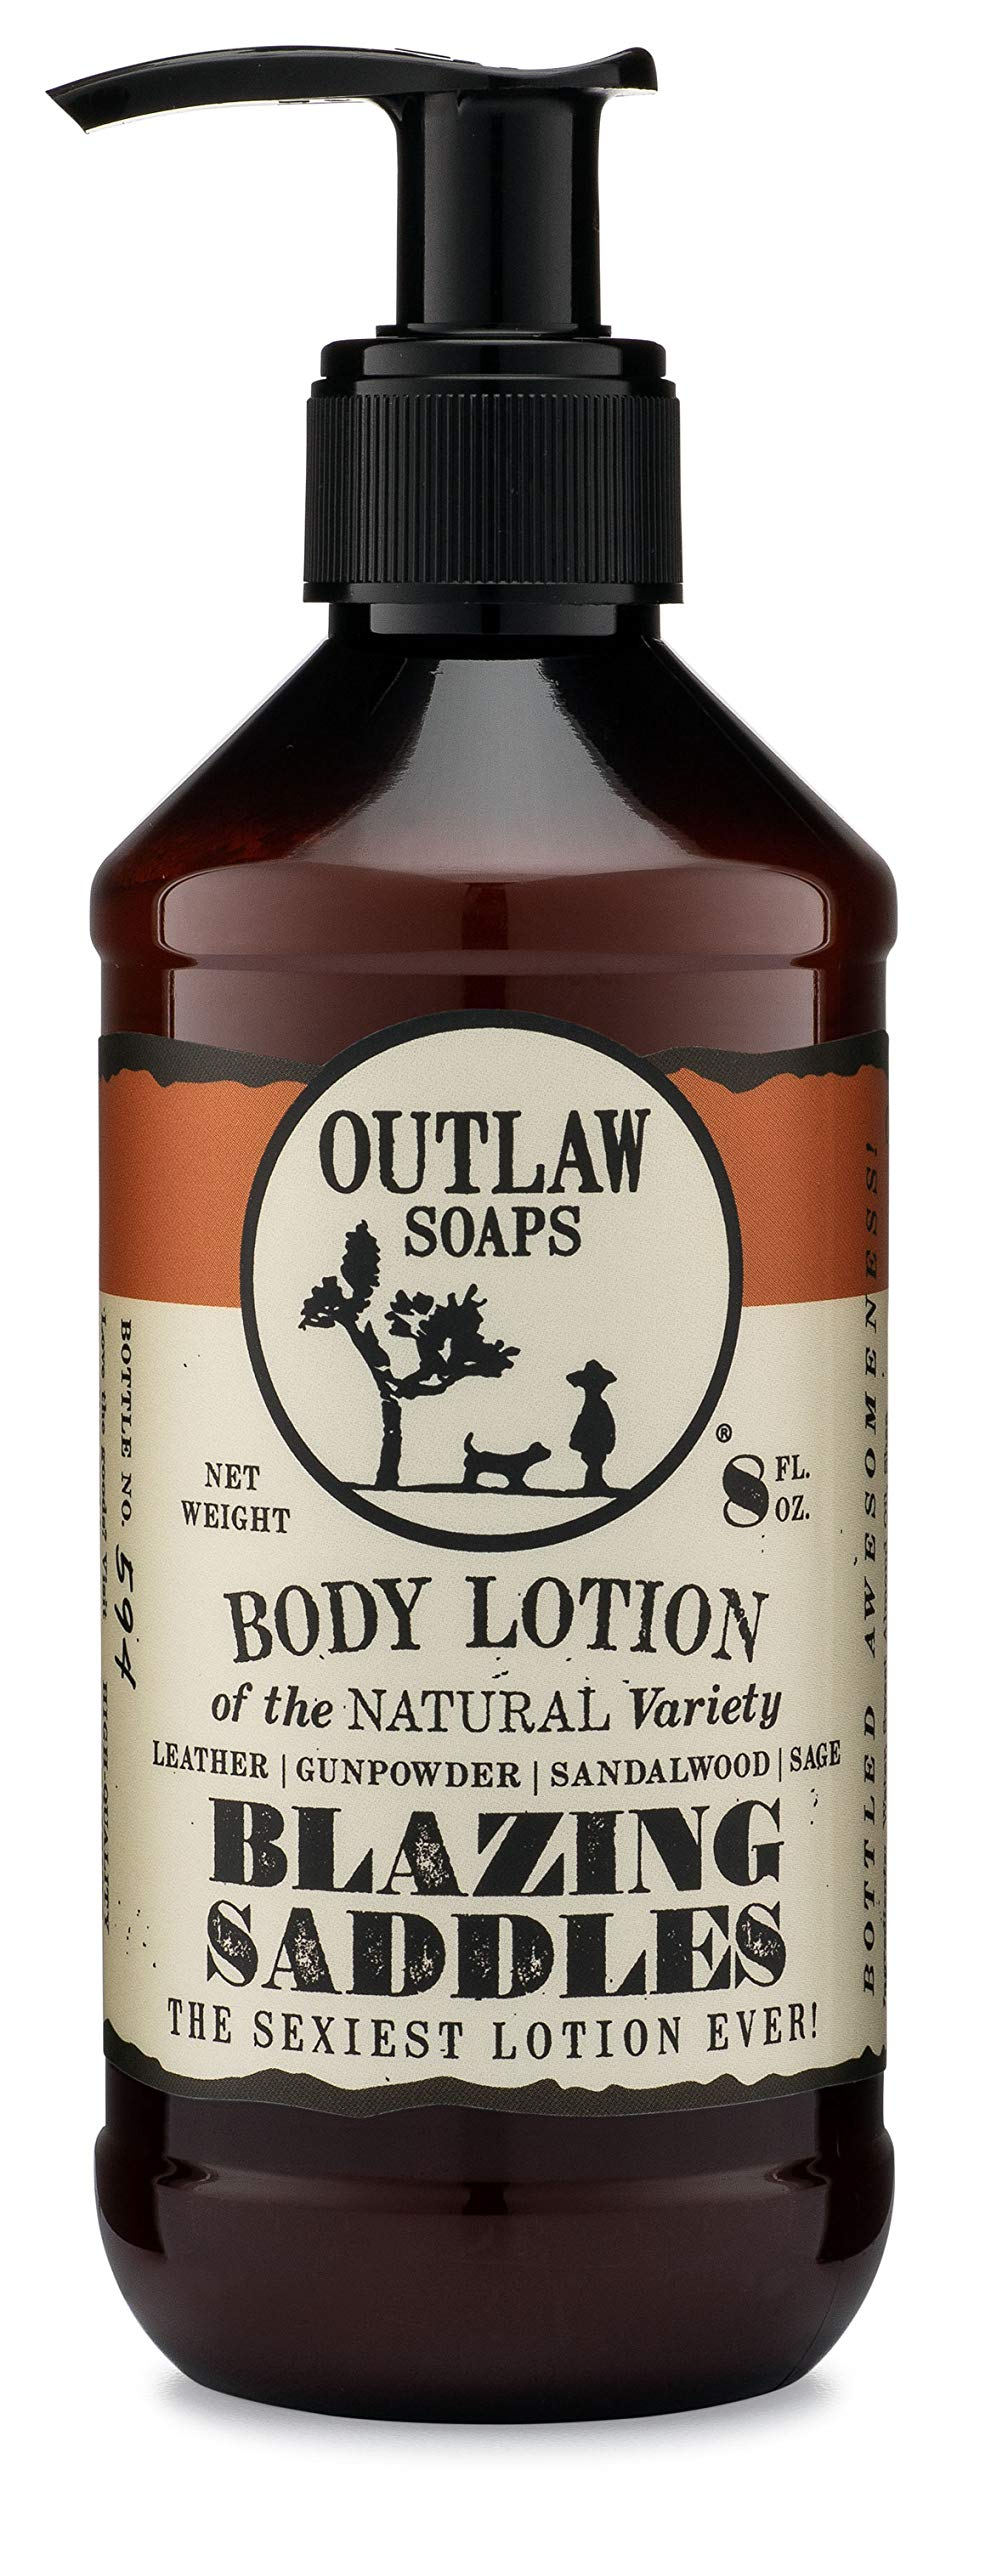 Blazing Saddles Natural Lotion - The Sexiest Lotion in the West - Western Inspired, Smells like Leather, Gunpowder, Sandalwood, and Sagebrush - Men's and Women's Lotion by Outlaw Soaps